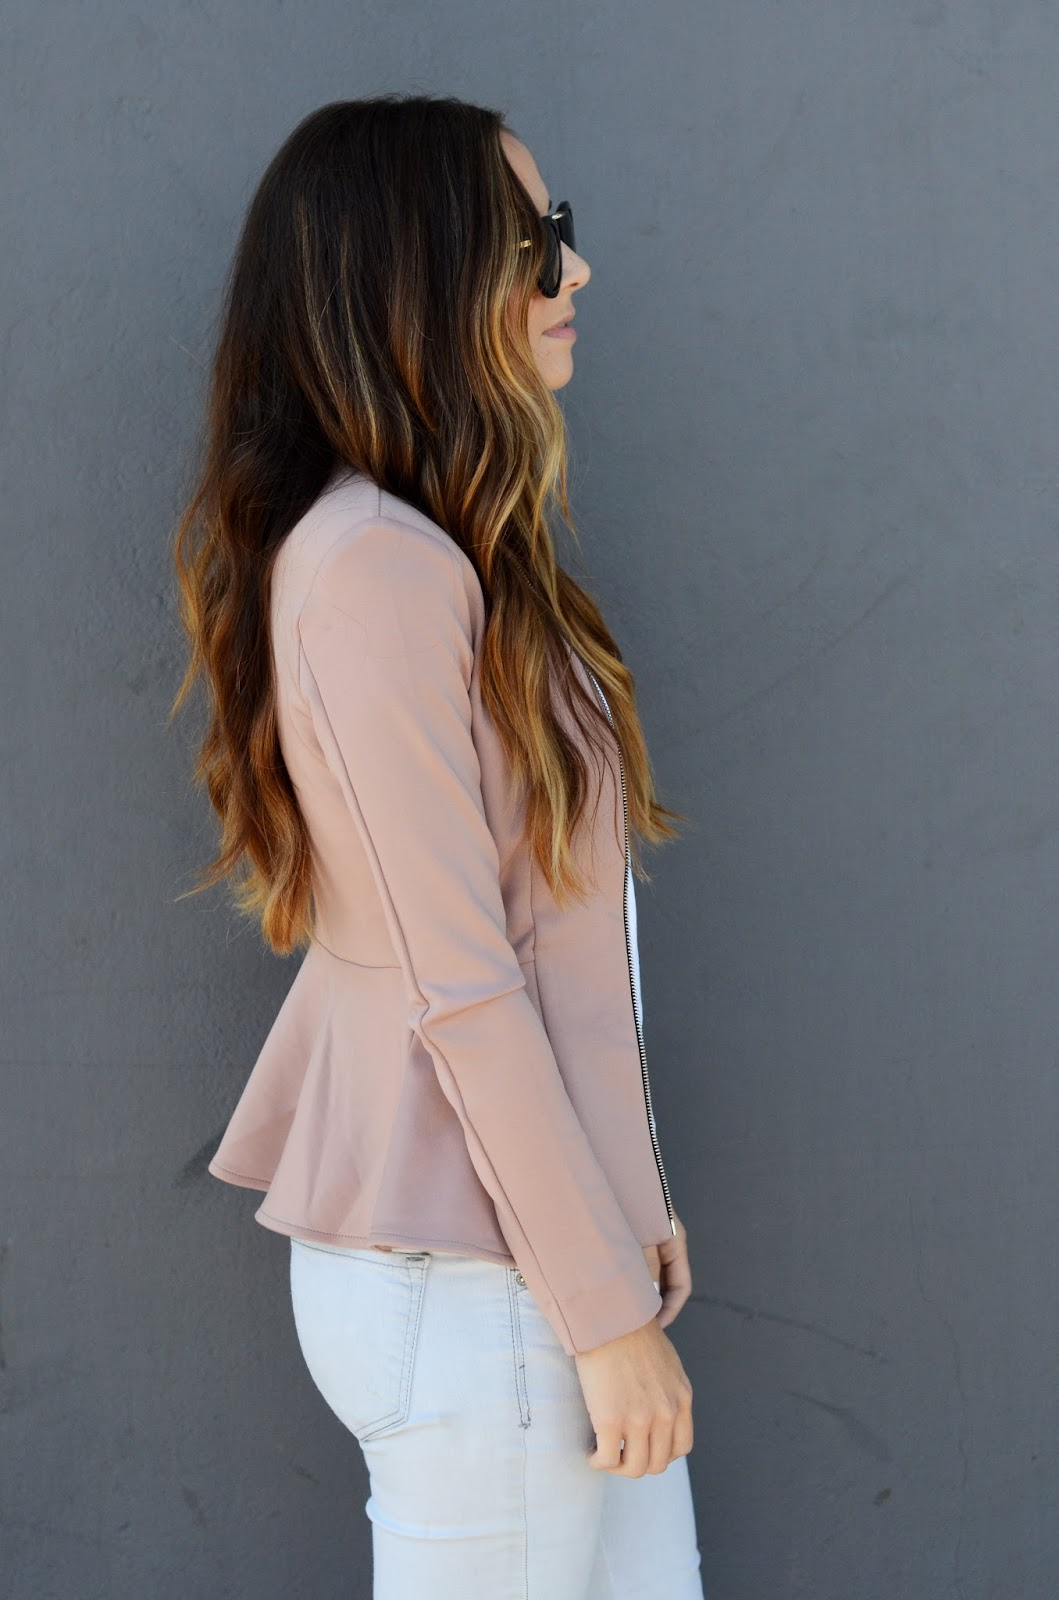 Merrick's Art Blush Jacket Spring Color Inspiration